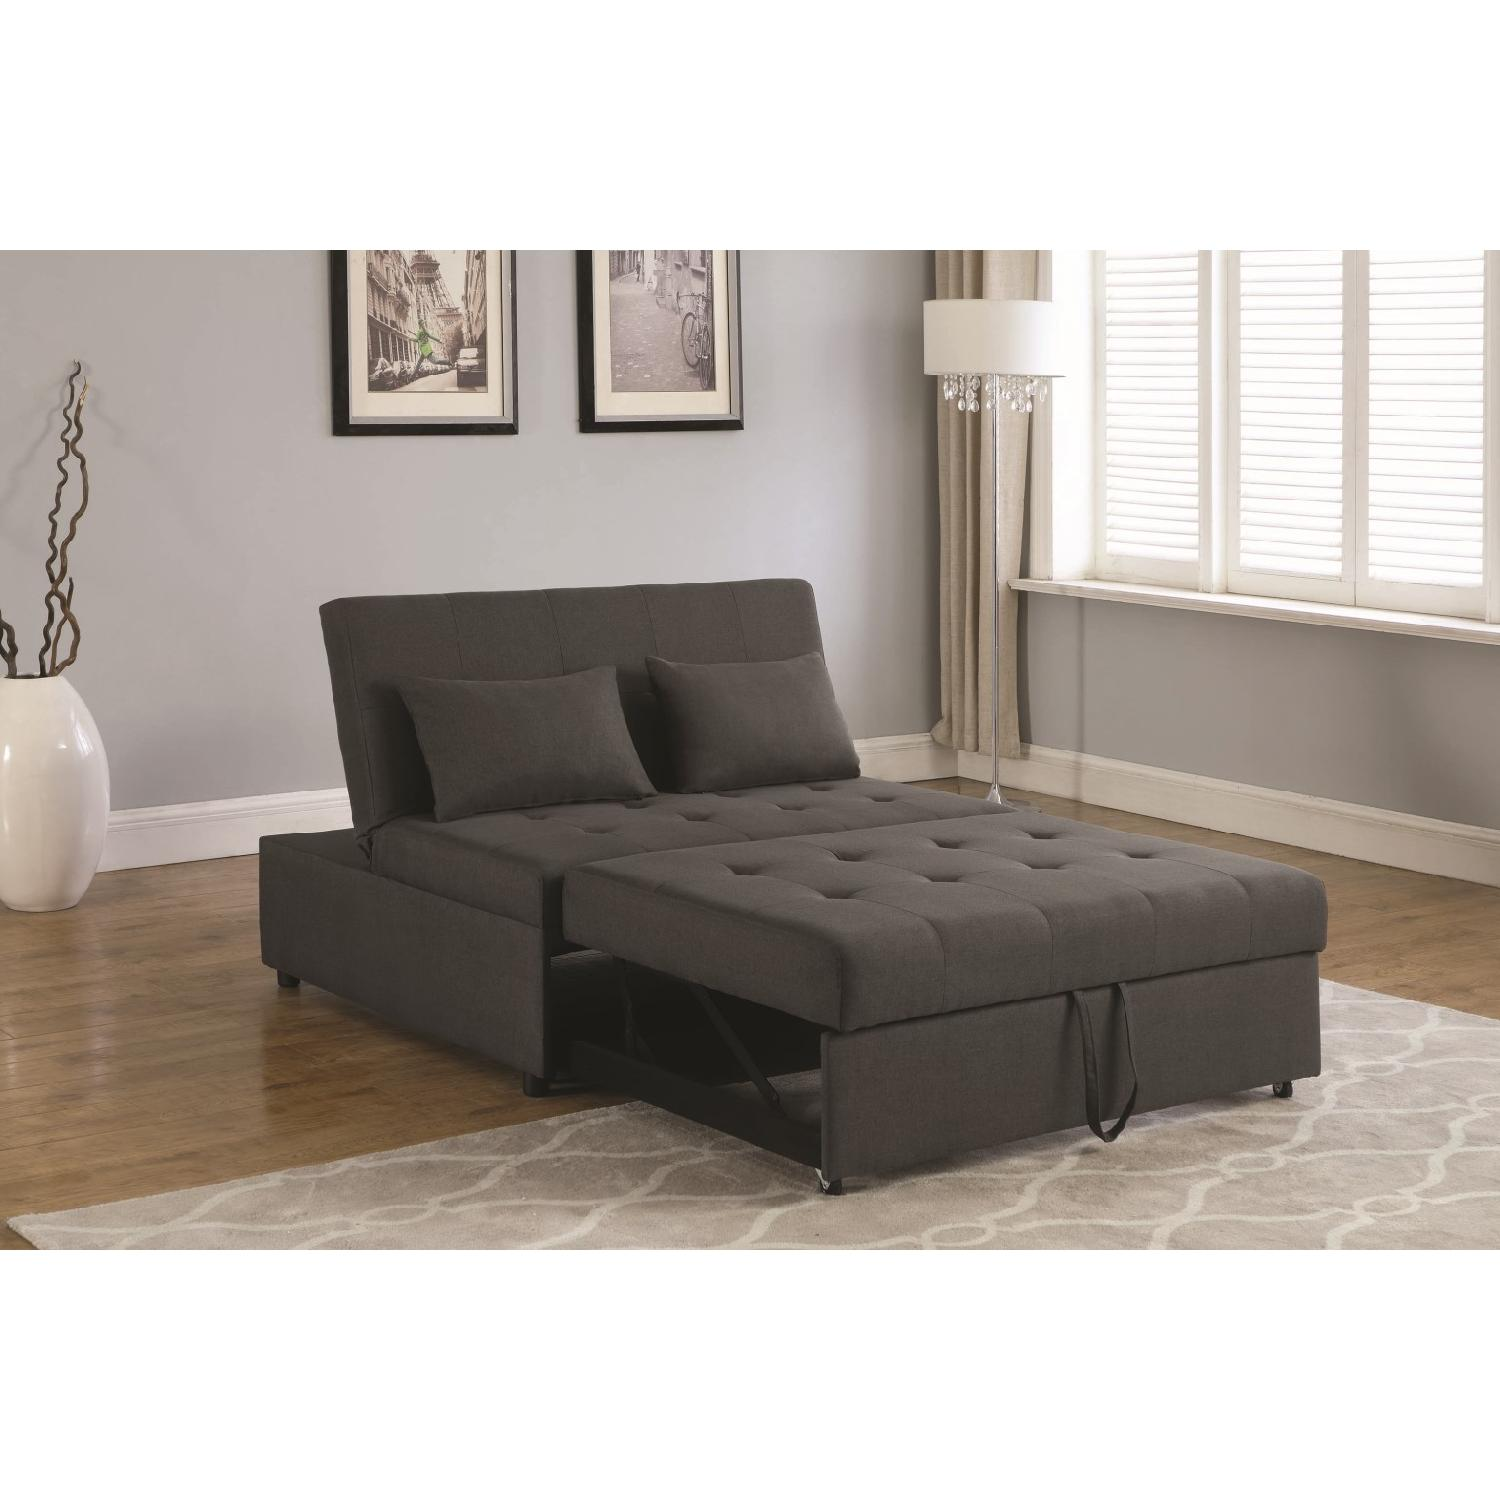 Sofabed in Grey Linen-Like Fabric w/ Pull-Out Sleeper - image-7